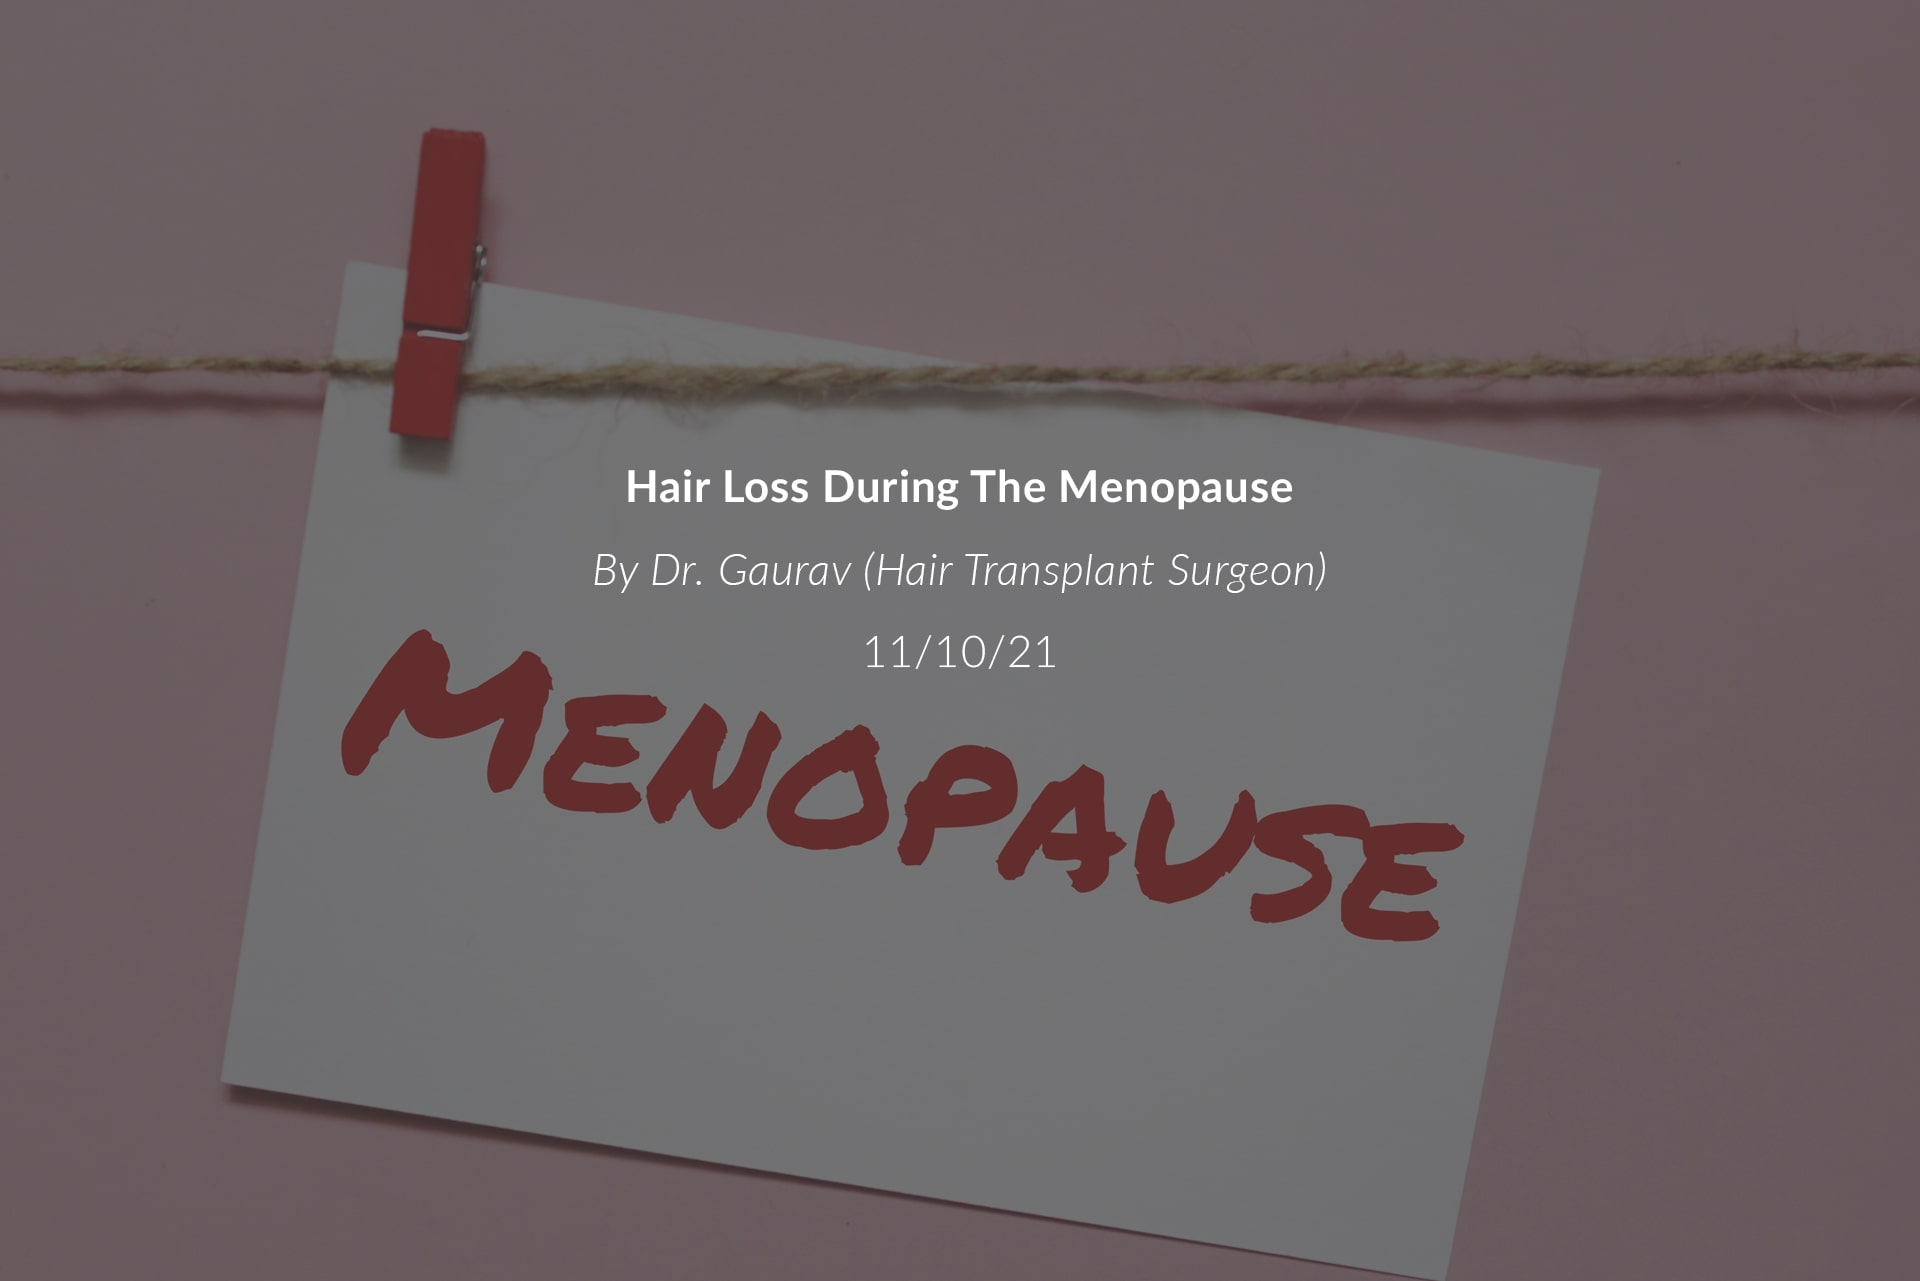 Hair Loss During The Menopause